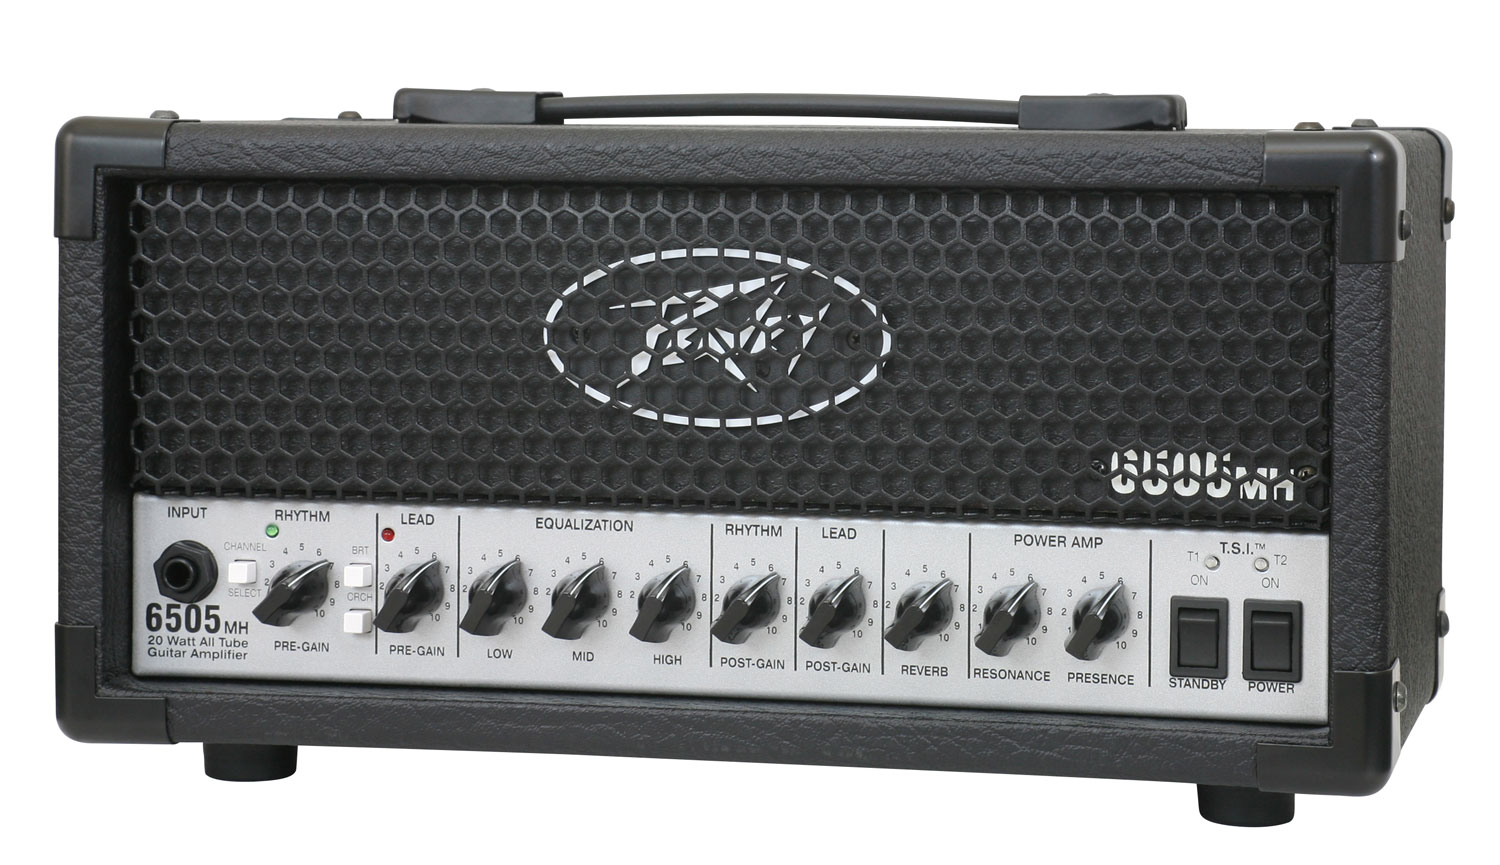 Peavey 6505 Mini Amp Head review